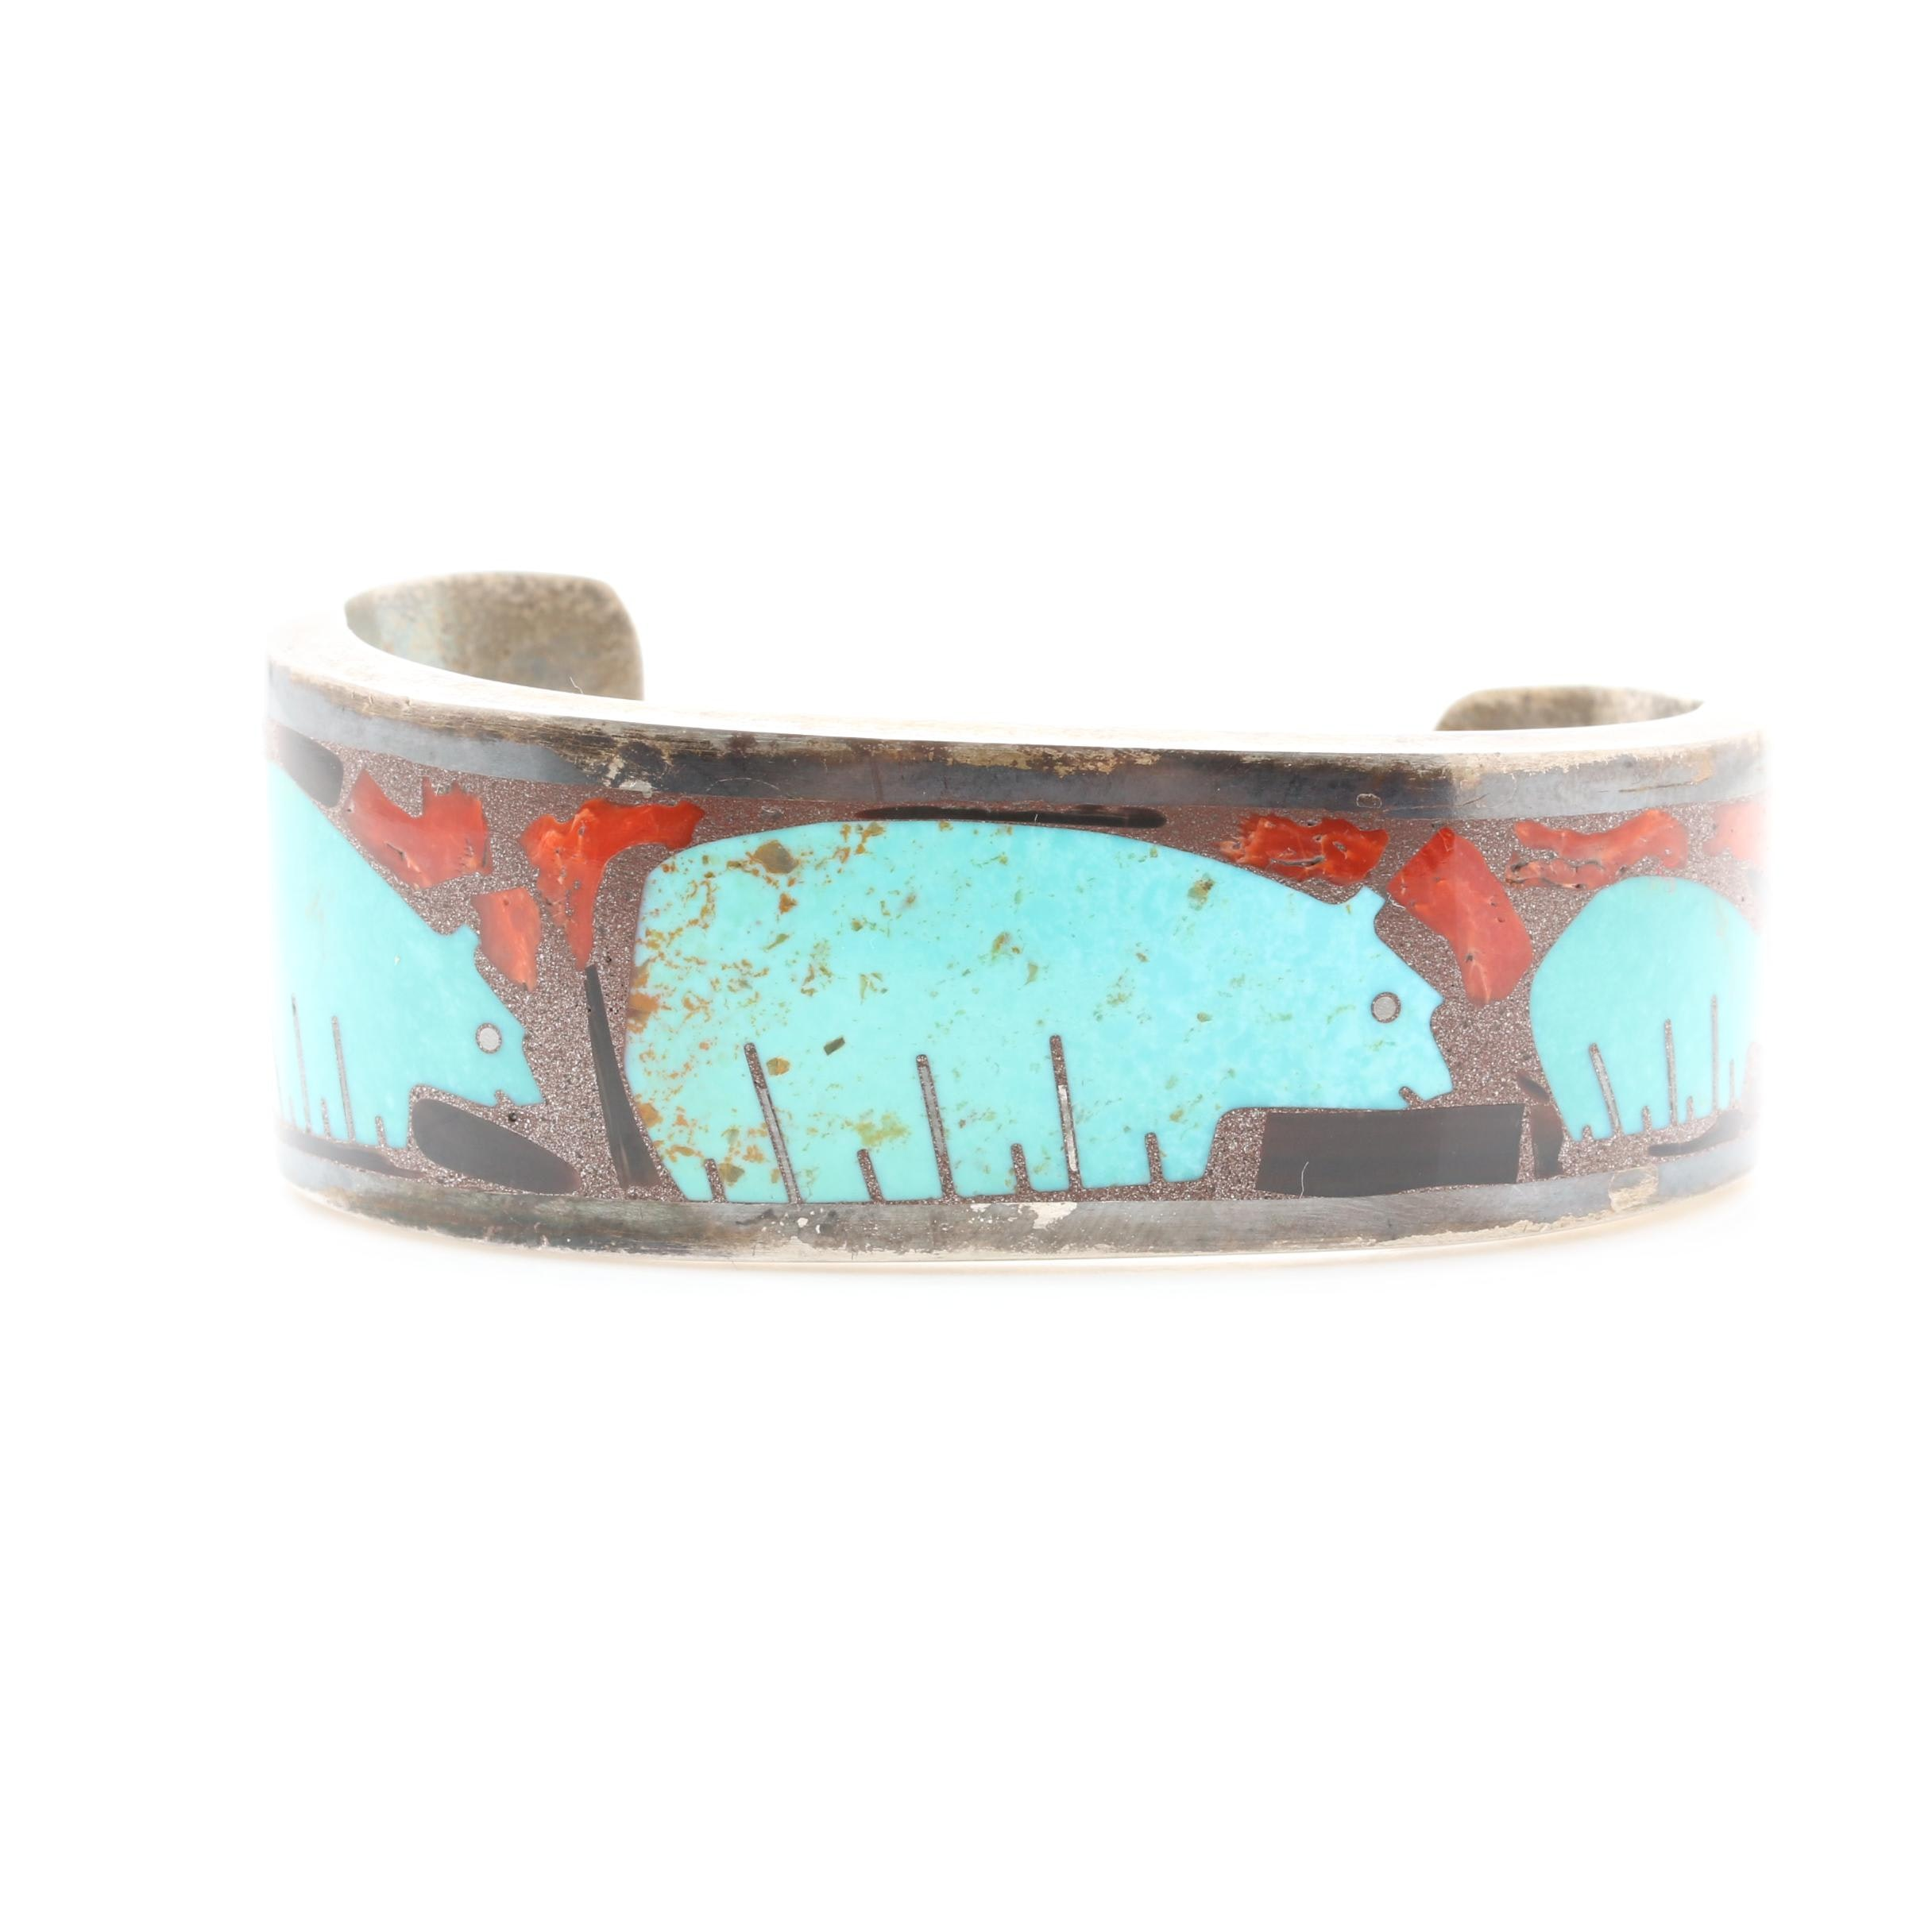 Southwestern Style Sterling Silver Turquoise, Coral, and Shell Inlay Bracelet